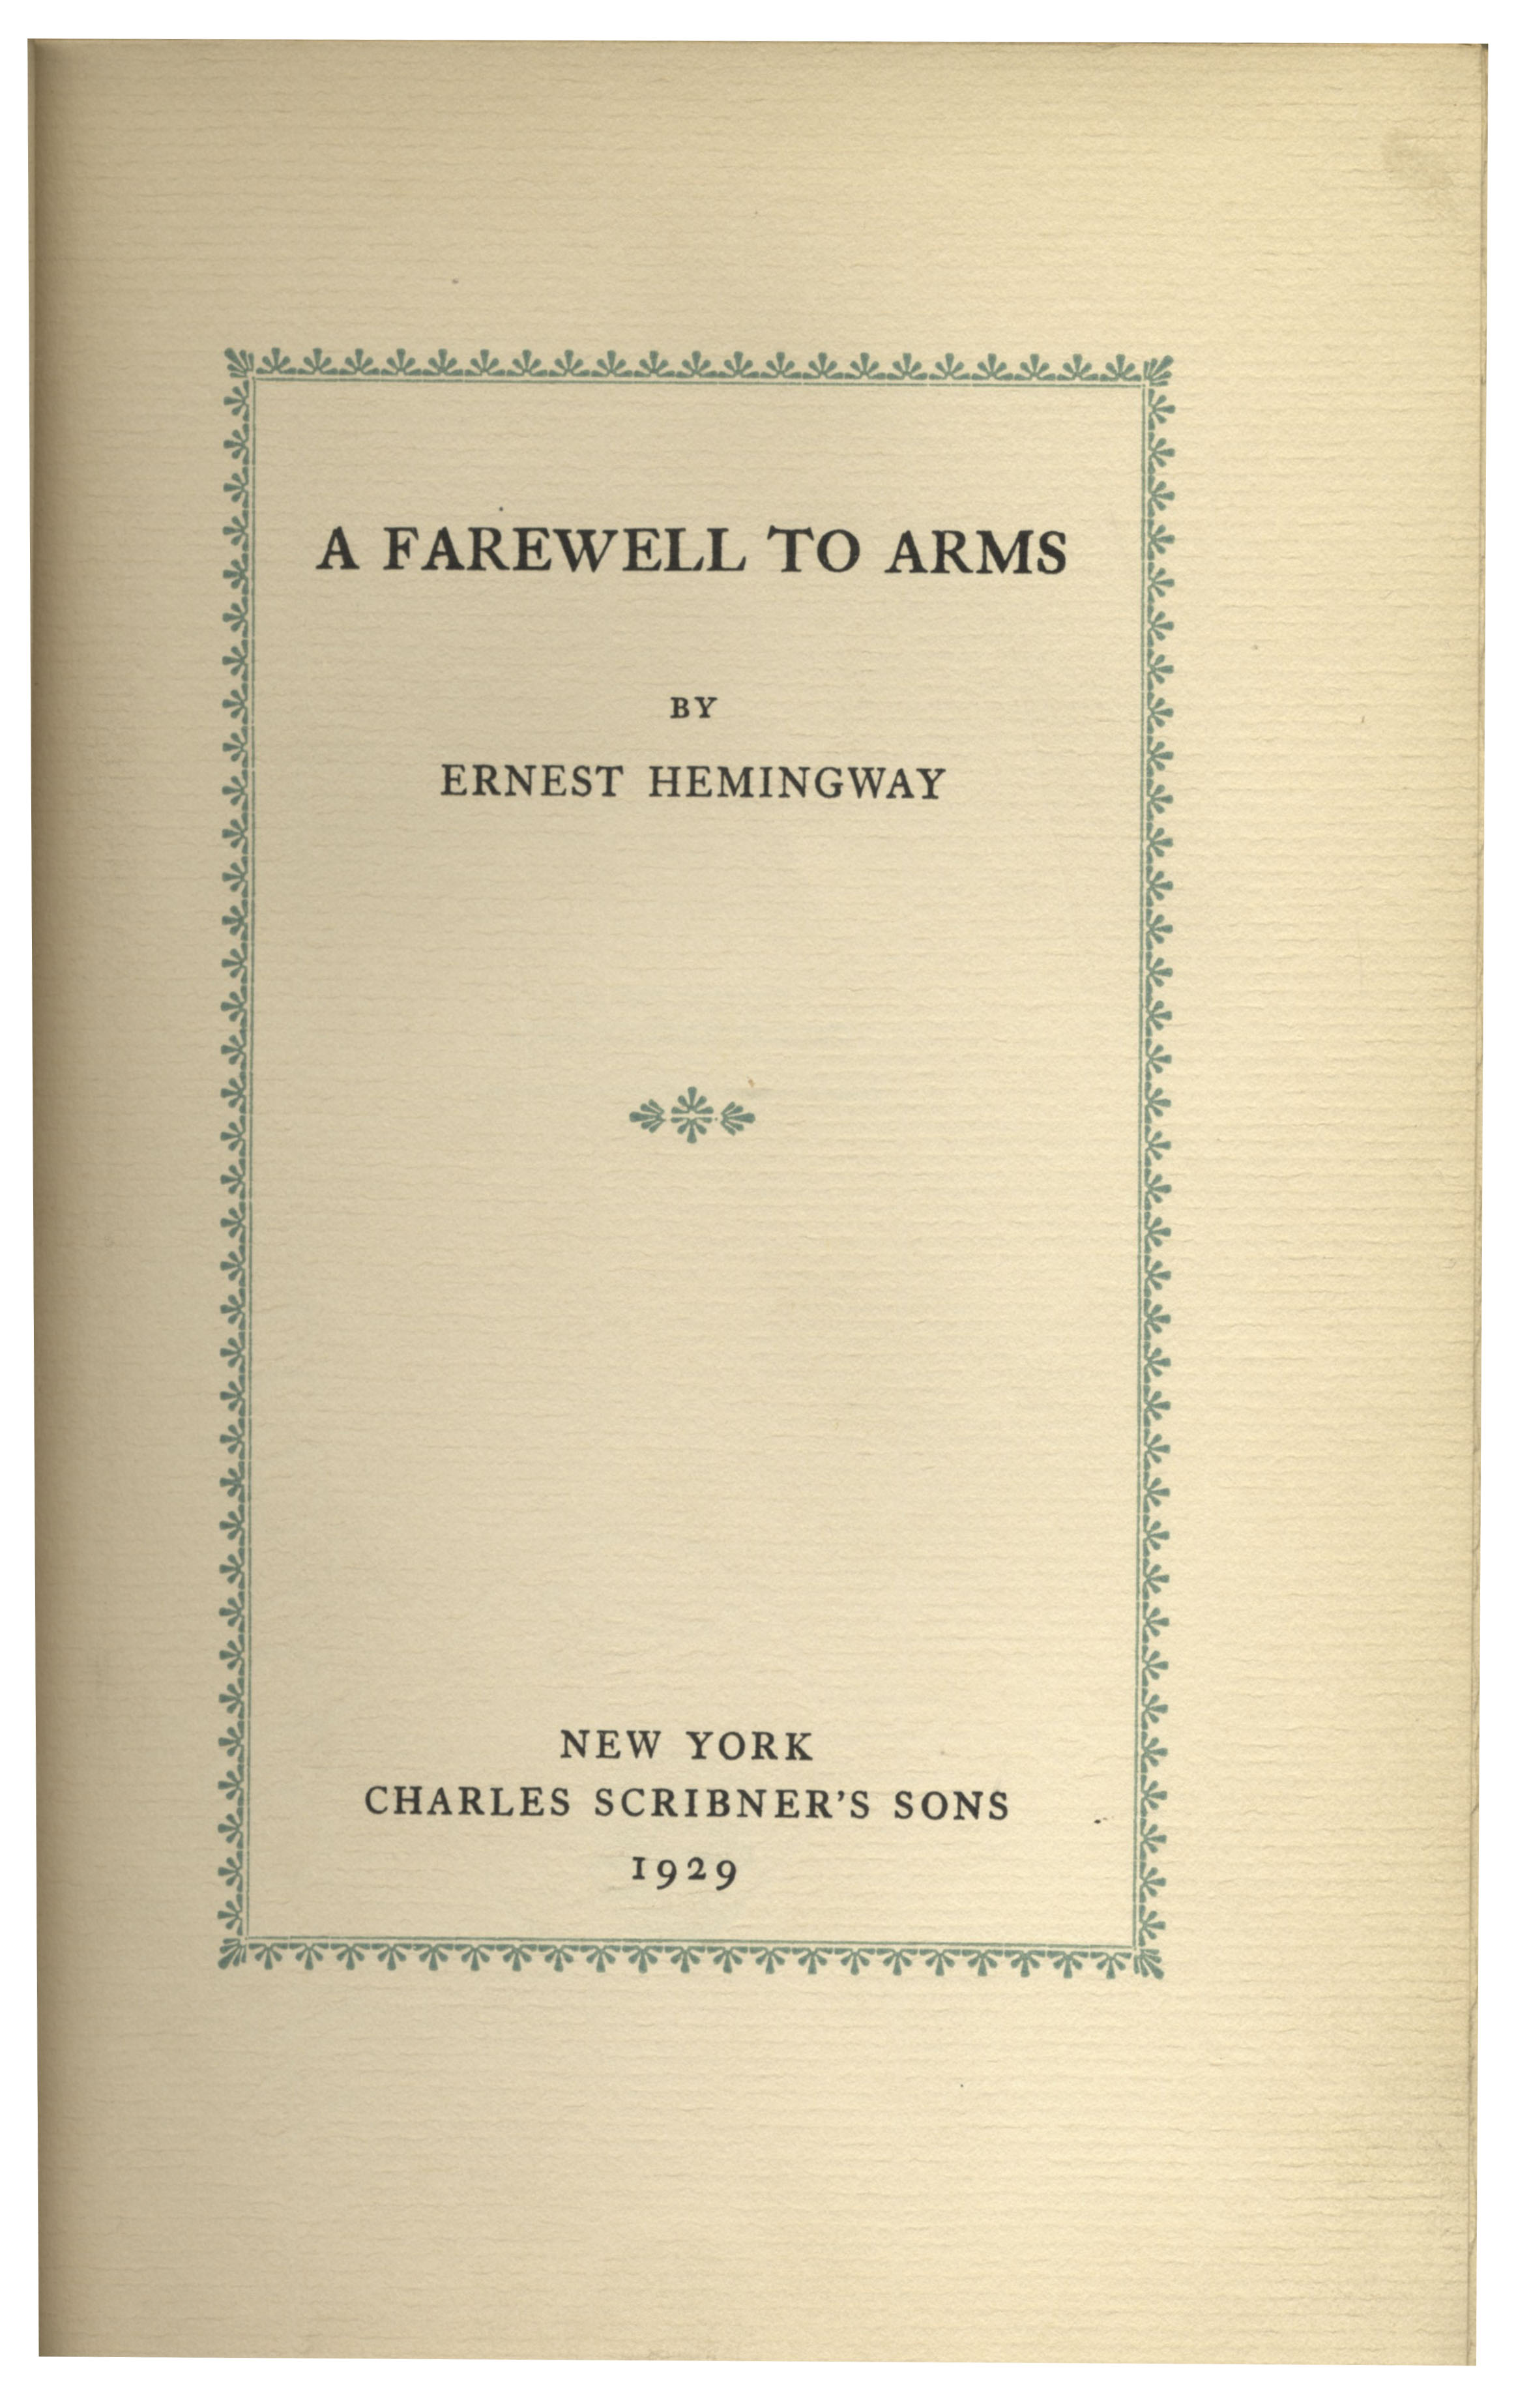 essay on a farewell to arms by ernest hemingway A farewell to arms is an autobiographical novel written between 1899 and1961 by ernest hemingway and first published in 1929the novel was written through a view point of lieutenant frederic henry, an american who serves as an ambulance driver in the italian army during the first world's war.